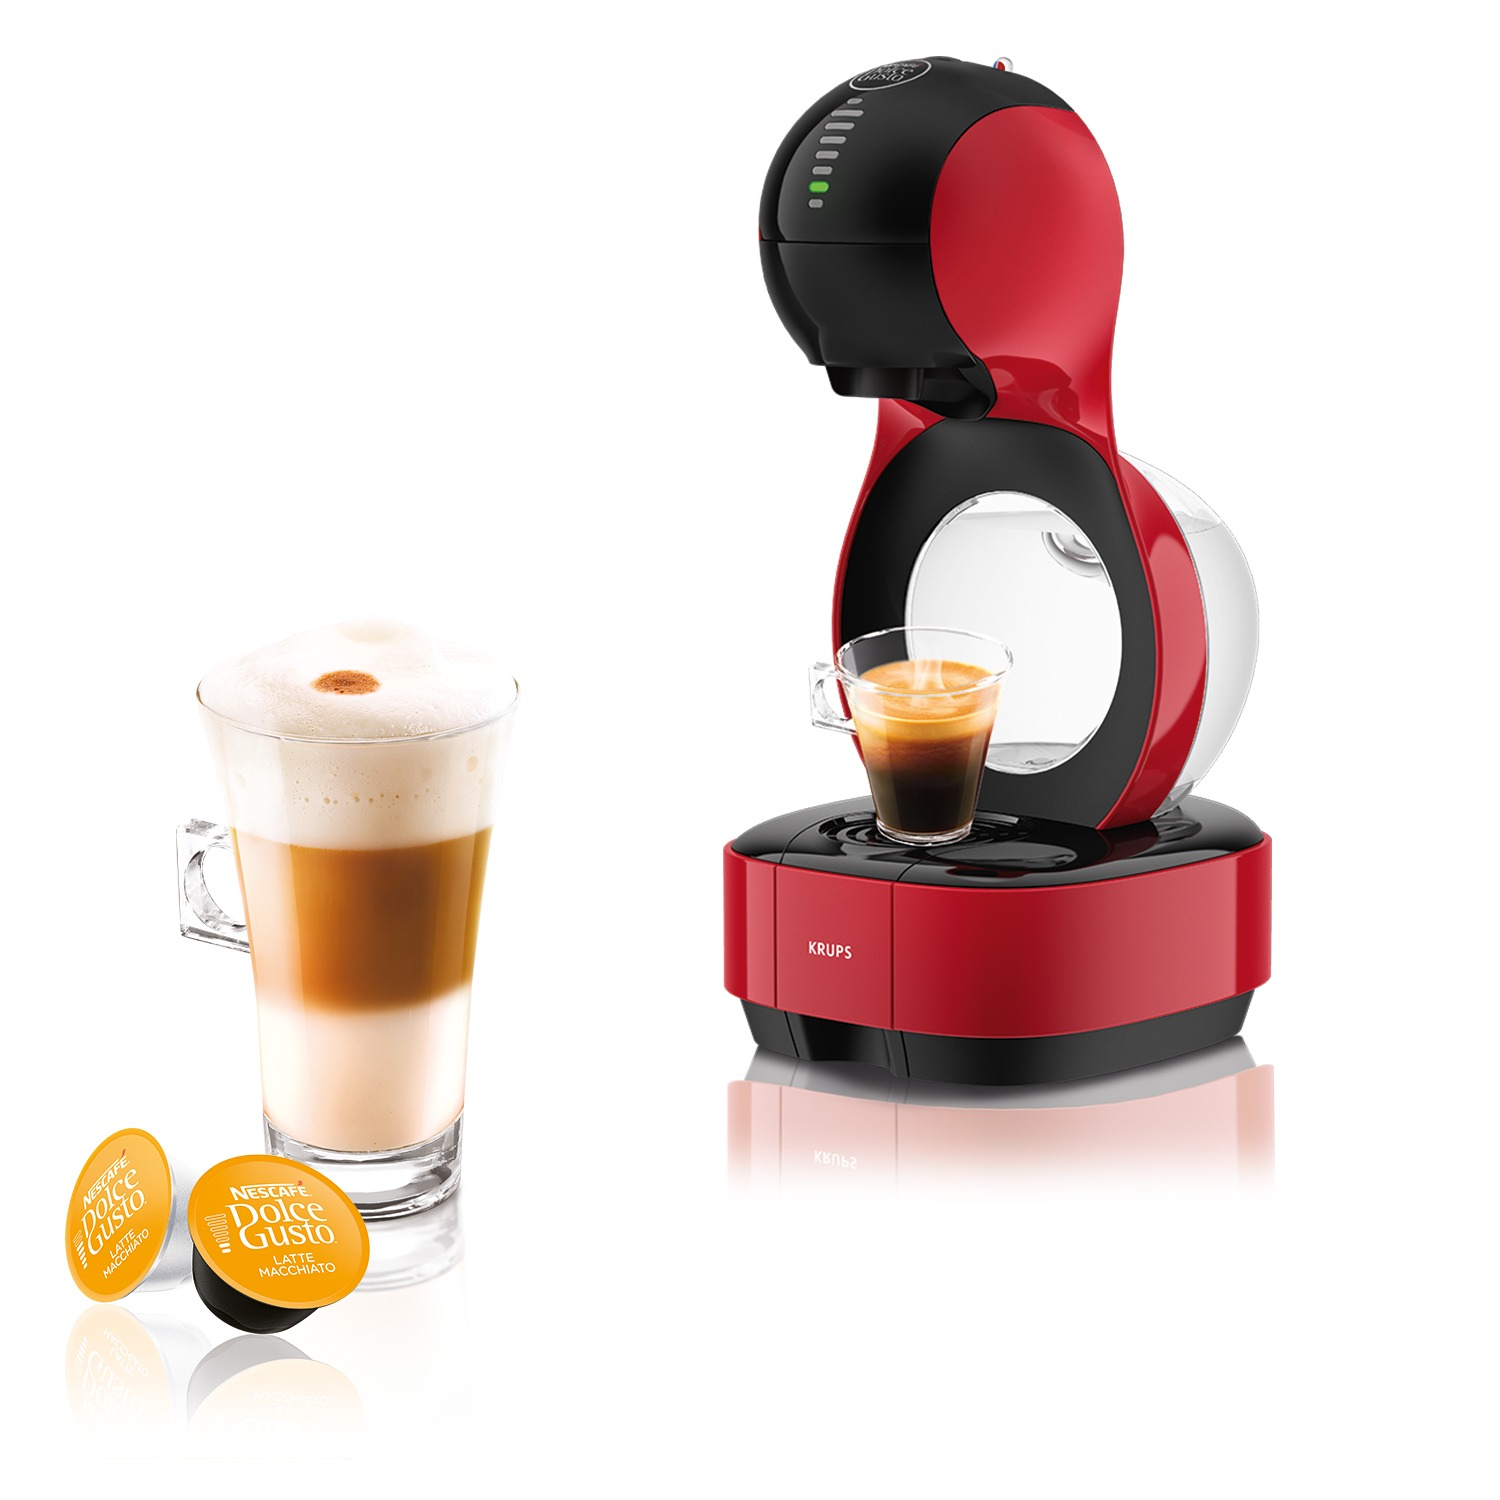 Krups KP1305 Dolce Gusto Lumio Espresso apparaat Rood